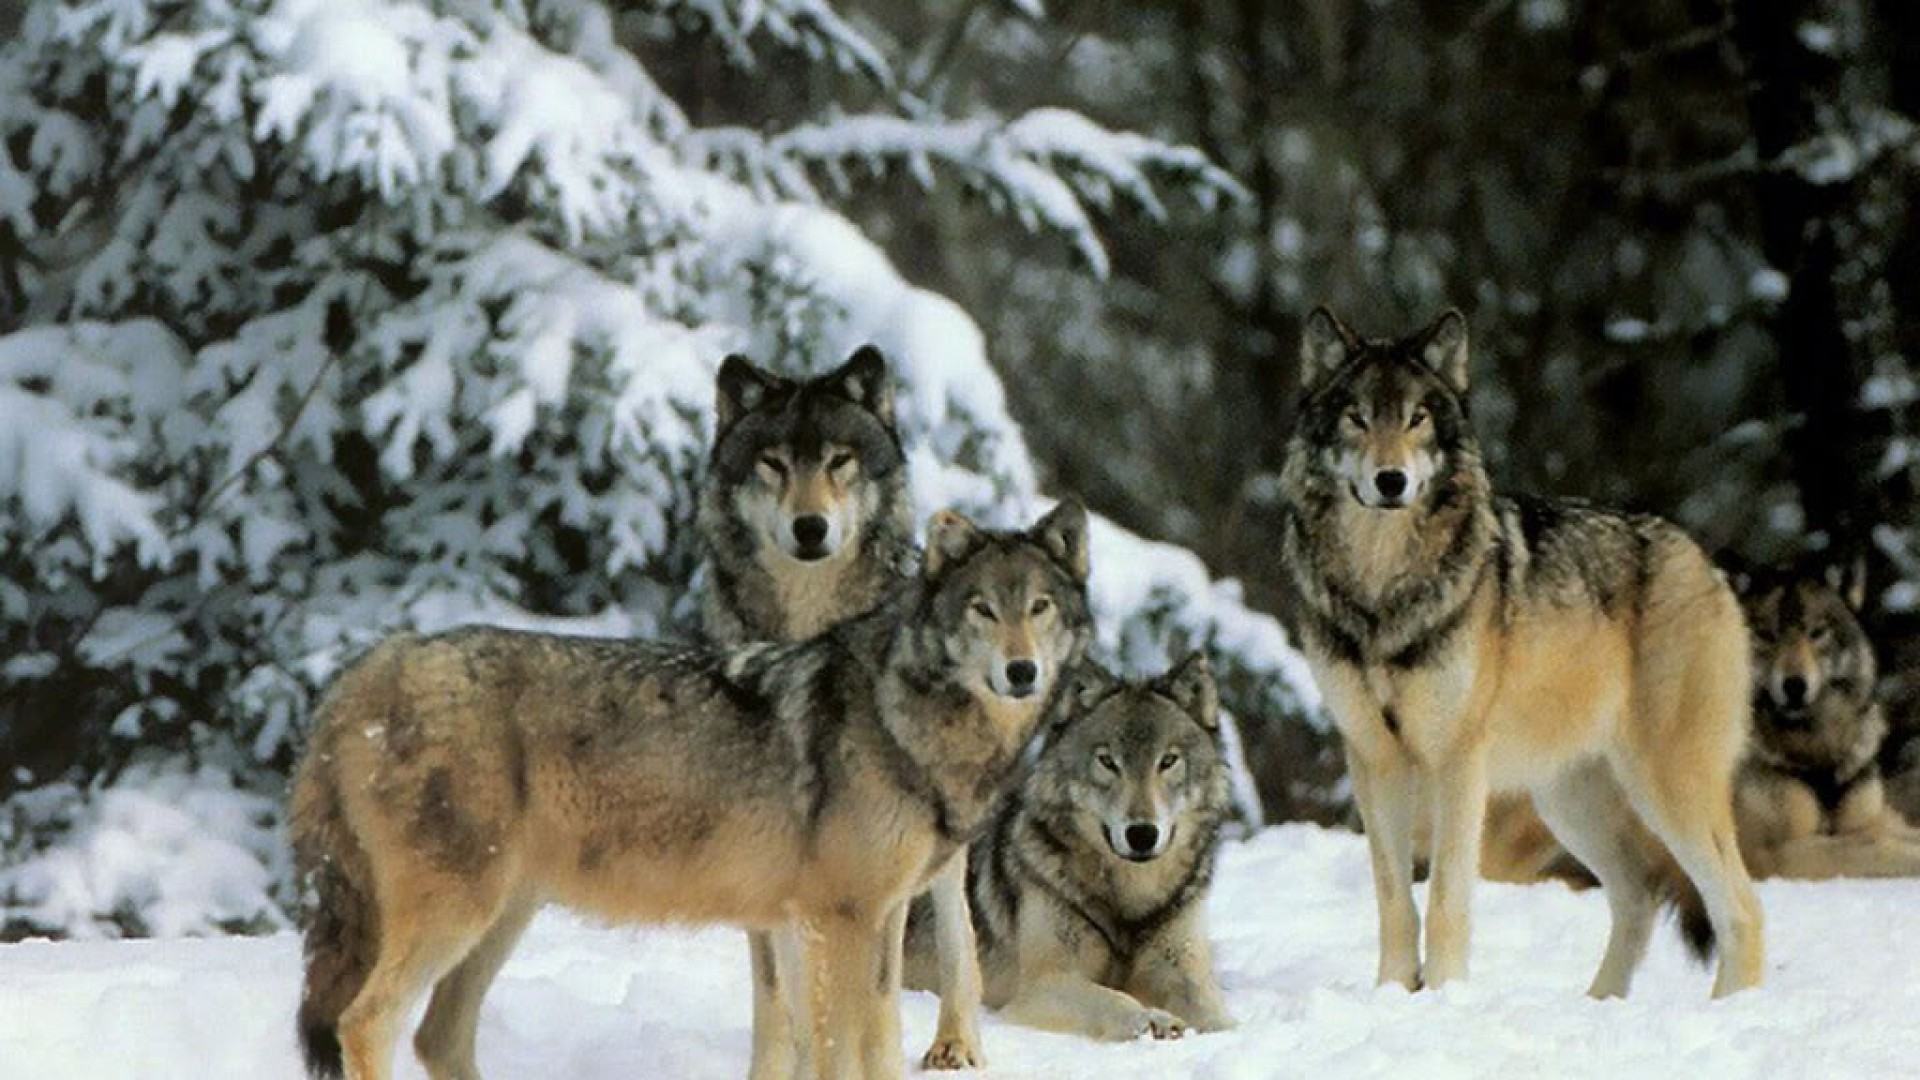 Free Download Wolf Pack Wallpaper Background Flowers Wallpaper 1920x1080 For Your Desktop Mobile Tablet Explore 51 Wolf Pack Desktop Wallpaper Wolf Pack Wallpaper Wolf Pack Desktop Wallpaper Nevada Wolf Pack Wallpaper